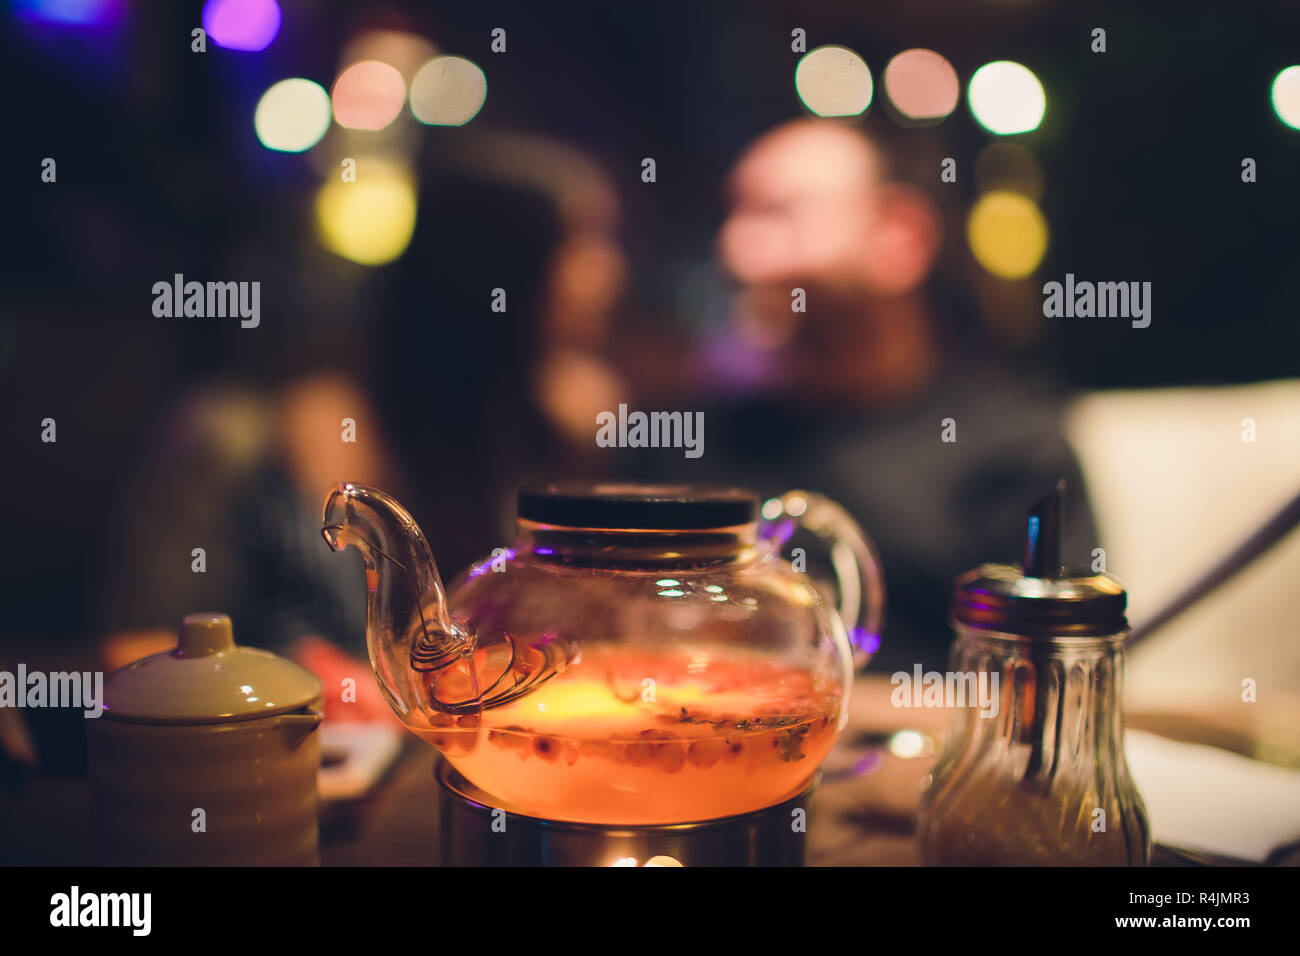 Teapot and glass cups with tea against wooden background. against the background of the restaurant in the evening. - Stock Image